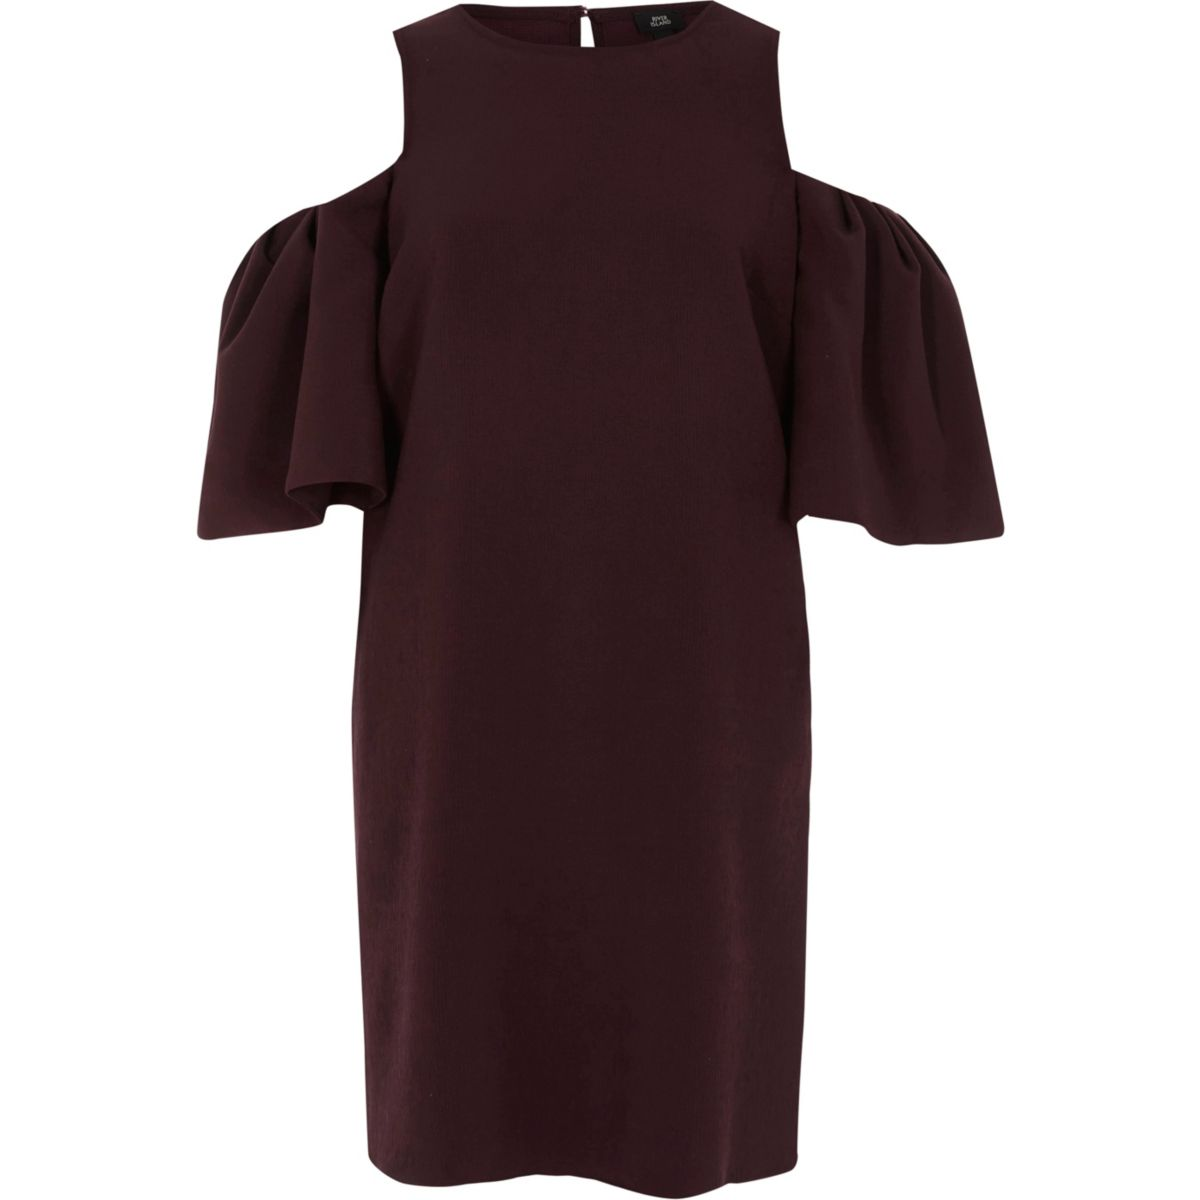 Burgundy cold shoulder swing dress